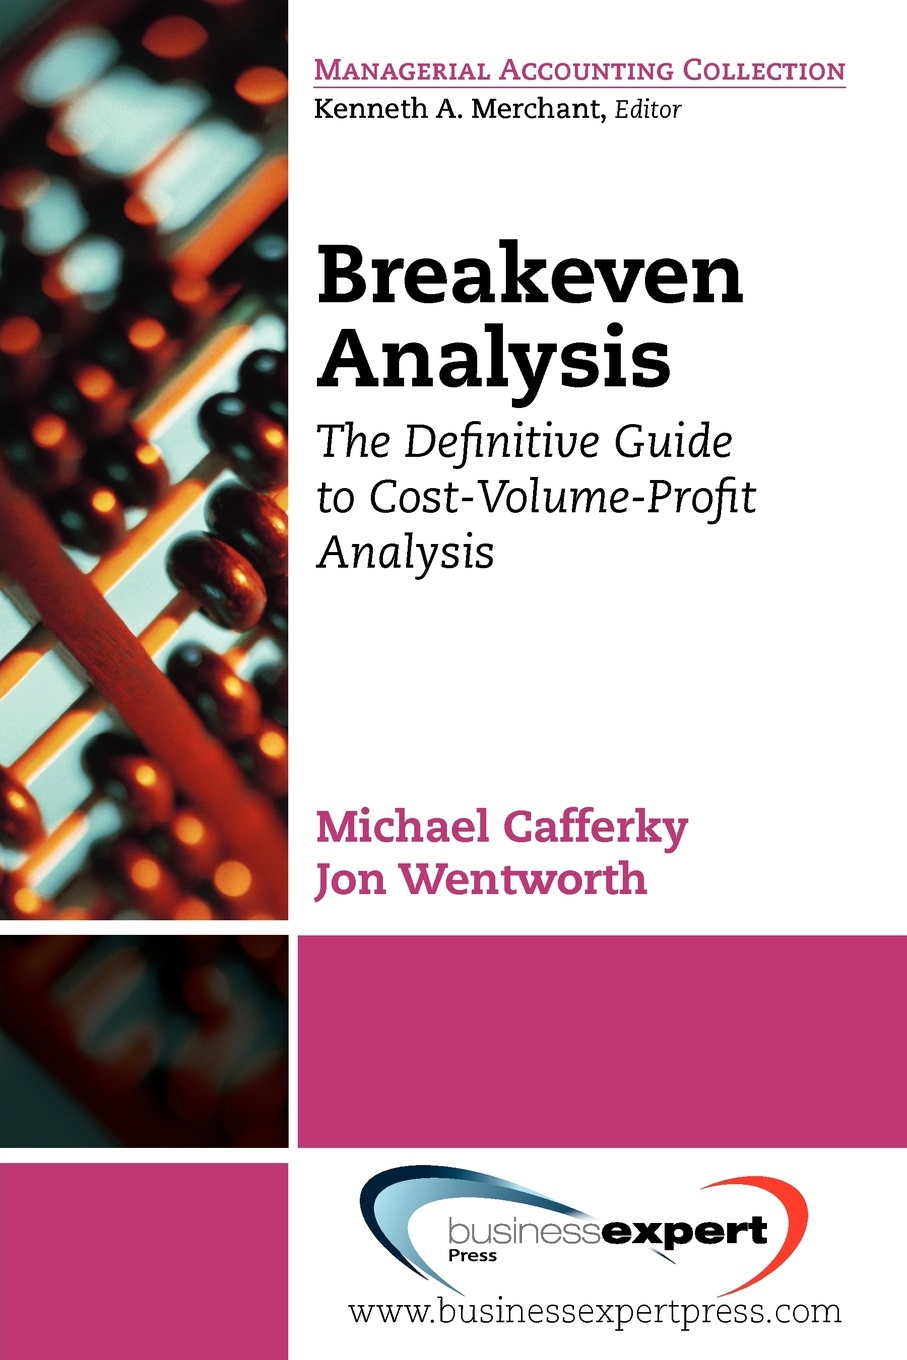 Michael Cafferky, Wentworth Jon, Cafferky Michael Cafferky Break Even Analysis michael archer d the forex chartist companion a visual approach to technical analysis